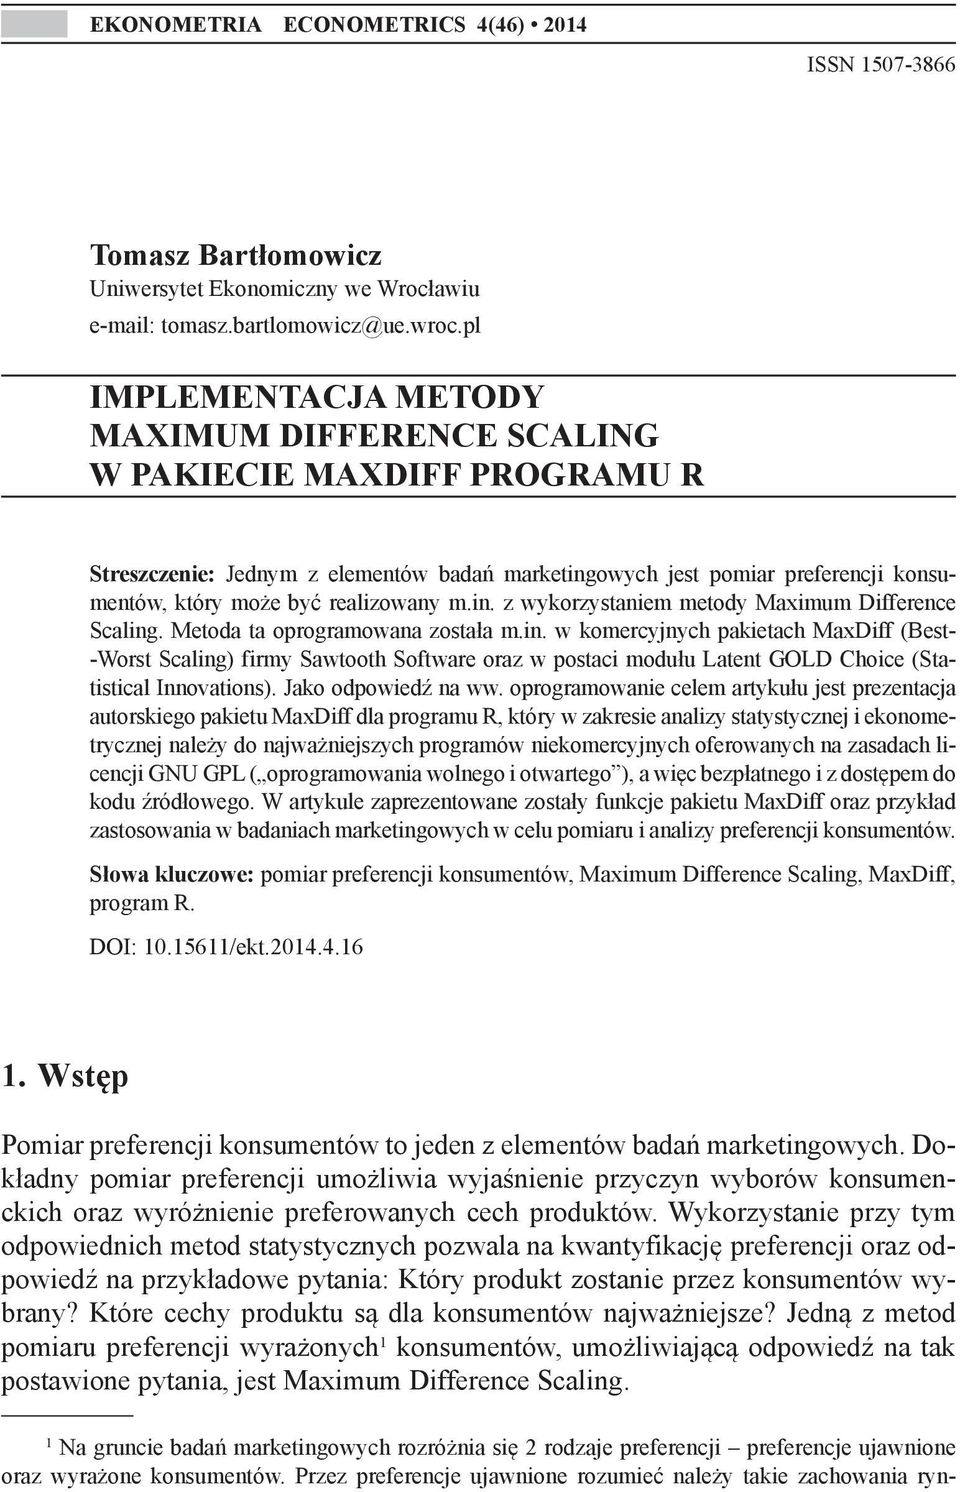 m.in. z wykorzystaniem metody Maximum Difference Scaling. Metoda ta oprogramowana została m.in. w komercyjnych pakietach MaxDiff (Best- -Worst Scaling) firmy Sawtooth Software oraz w postaci modułu Latent GOLD Choice (Statistical Innovations).